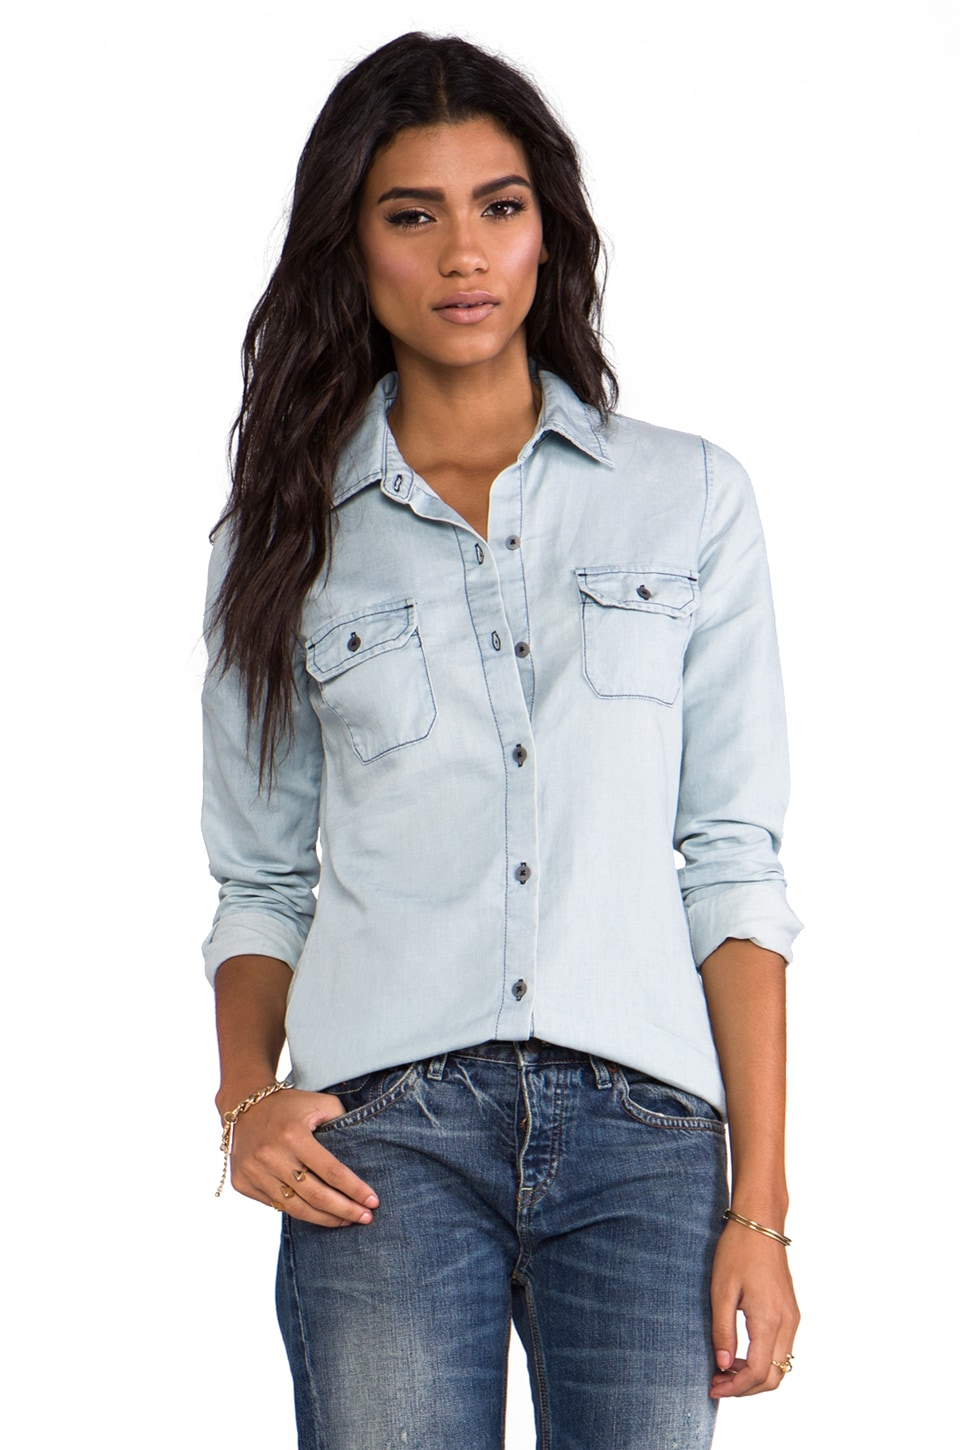 AG Adriano Goldschmied Dakota Chambray Shirt in Light Wash